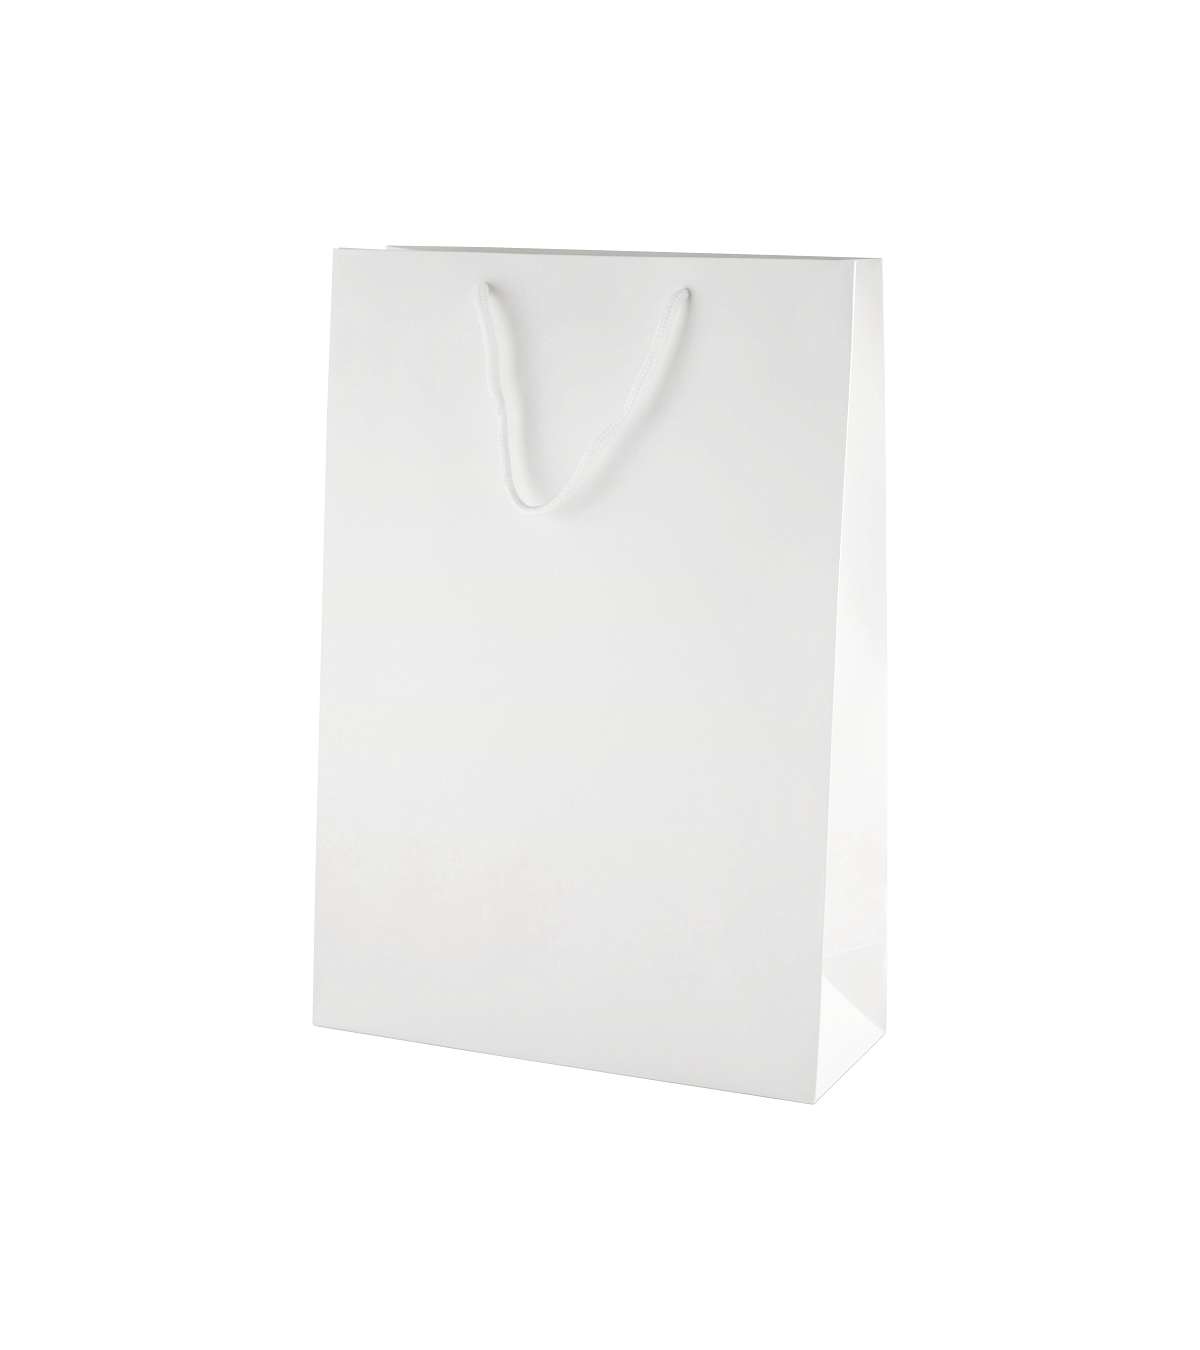 White Matt Boutique Paper Carrier Bags With Rope Handles